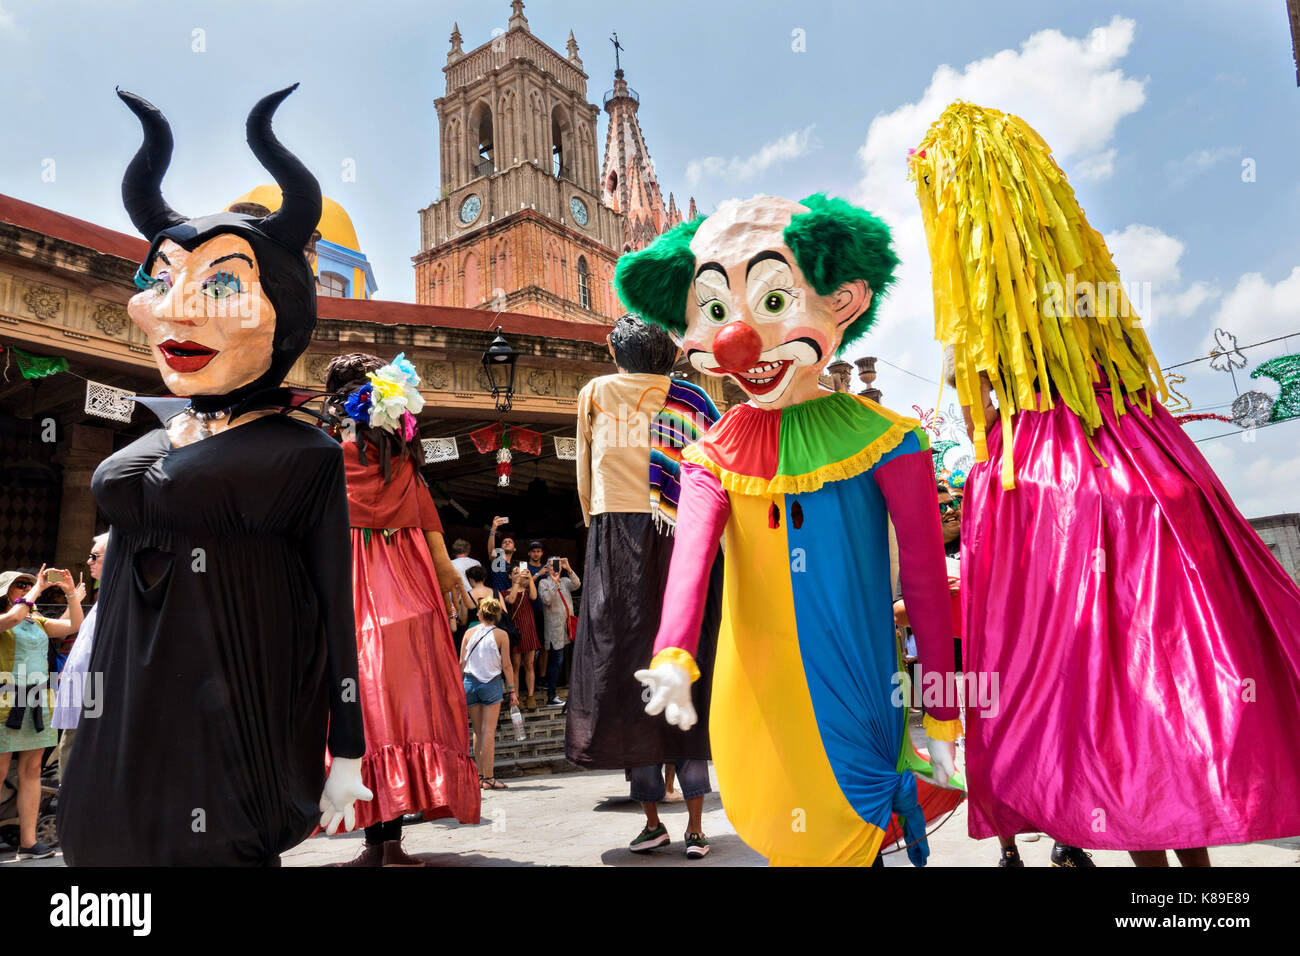 Giant papier mâché puppets called mojigangas dance in front of the Parroquia de San Miguel Arcangel church - Stock Image